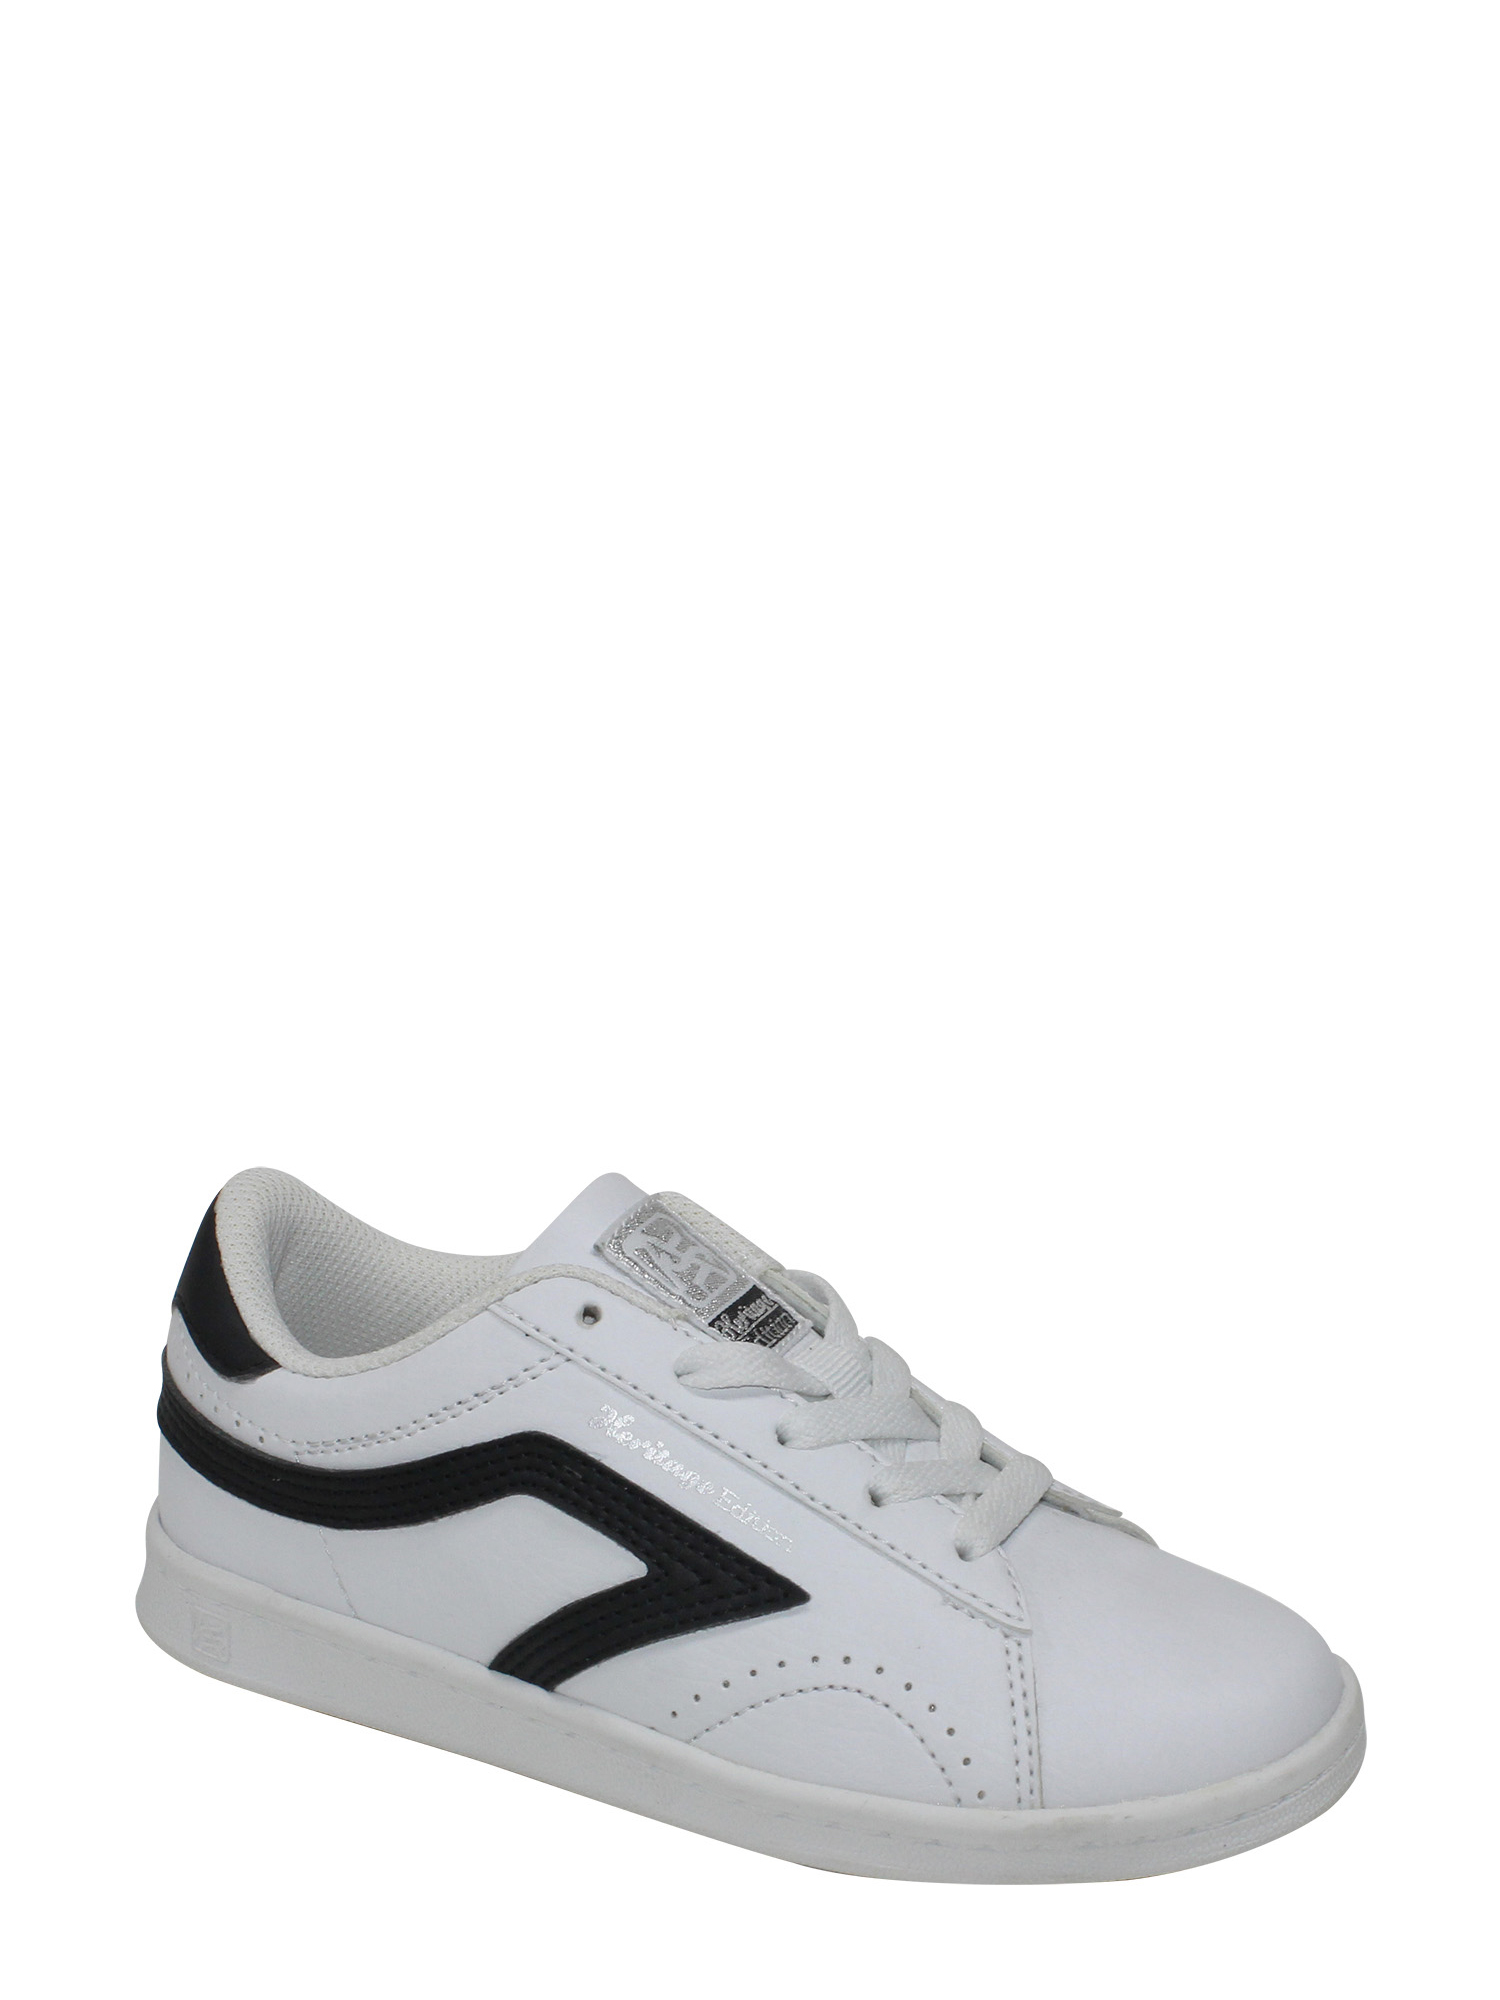 Boys' Airspeed Casual Court Shoes